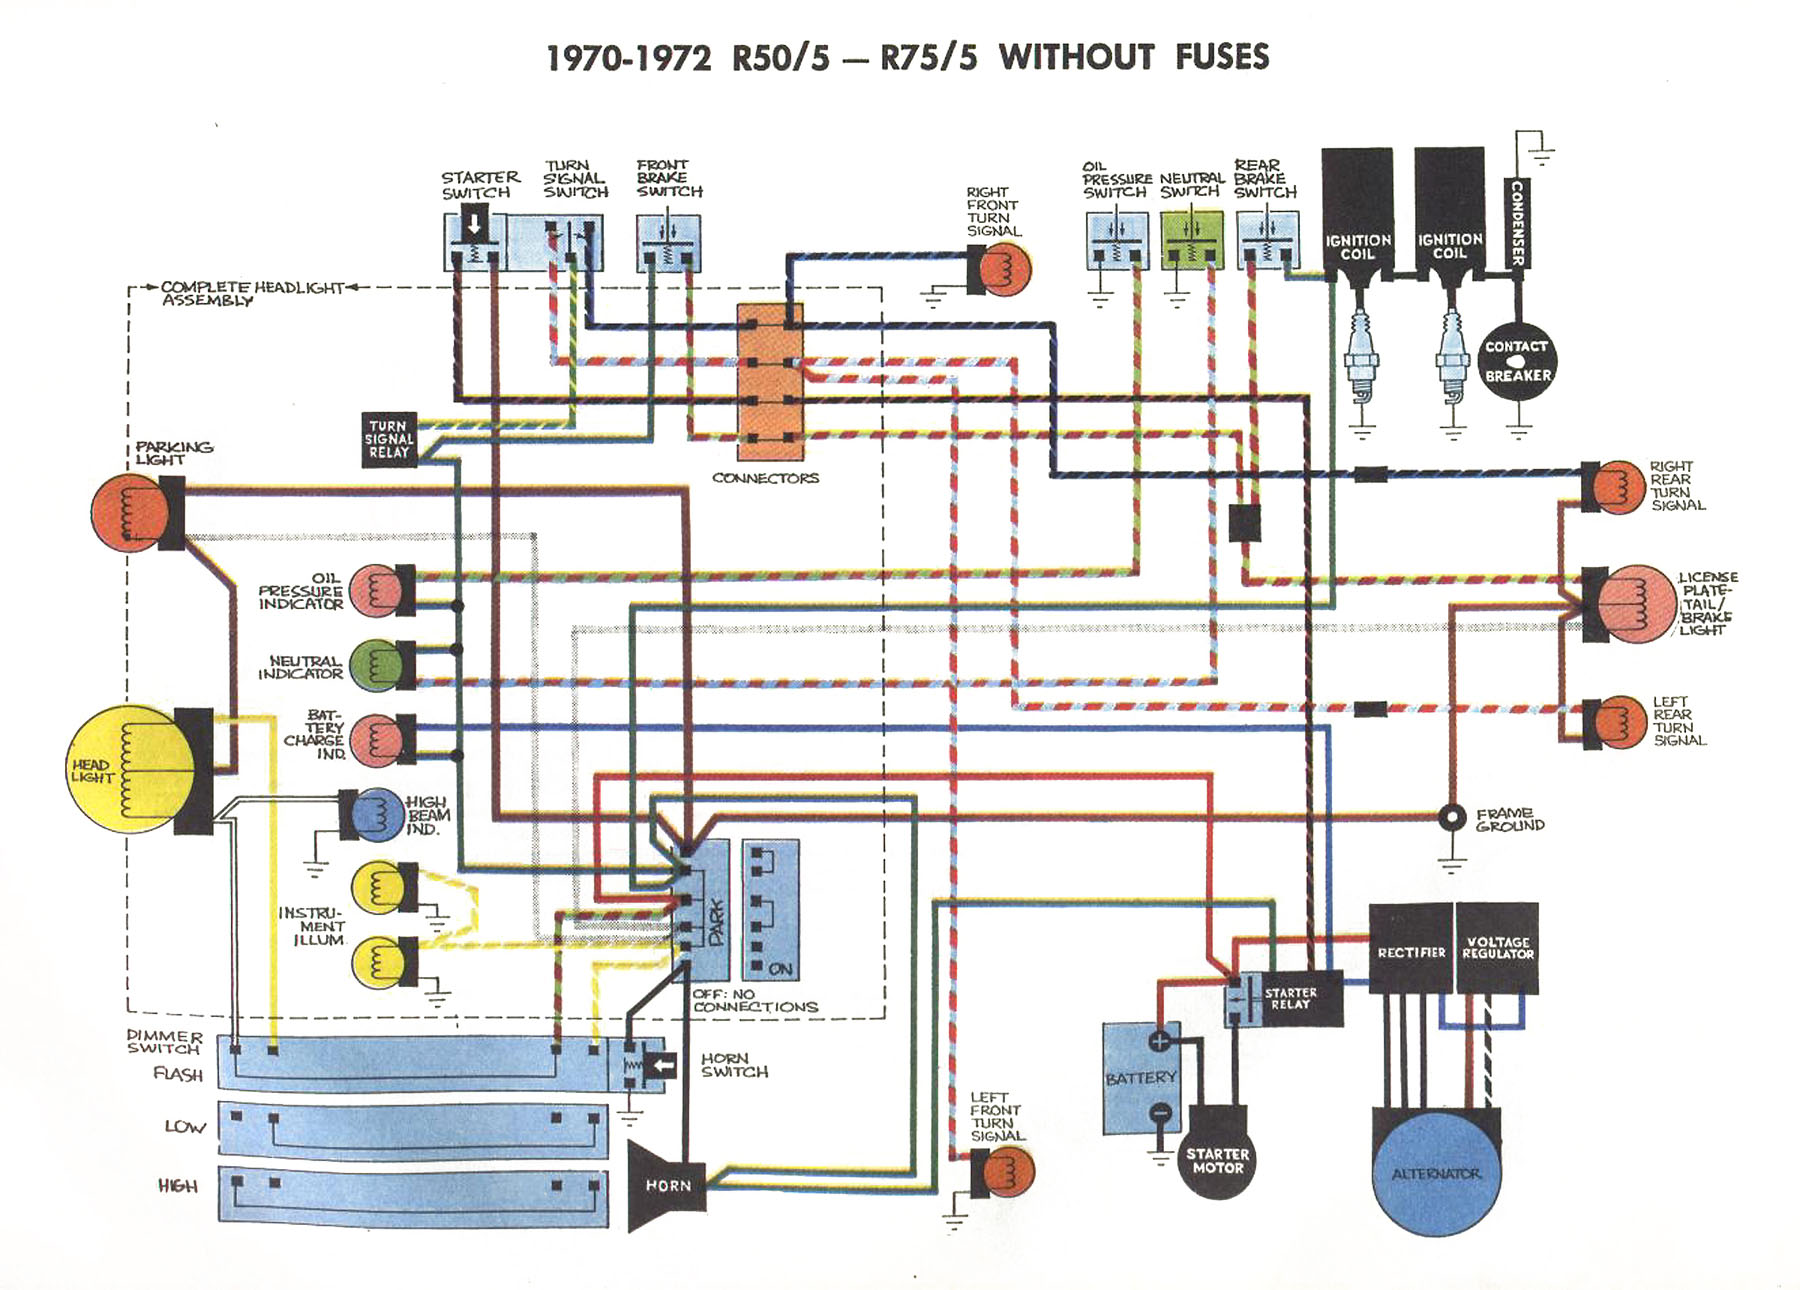 /5 (without fuses) schematic